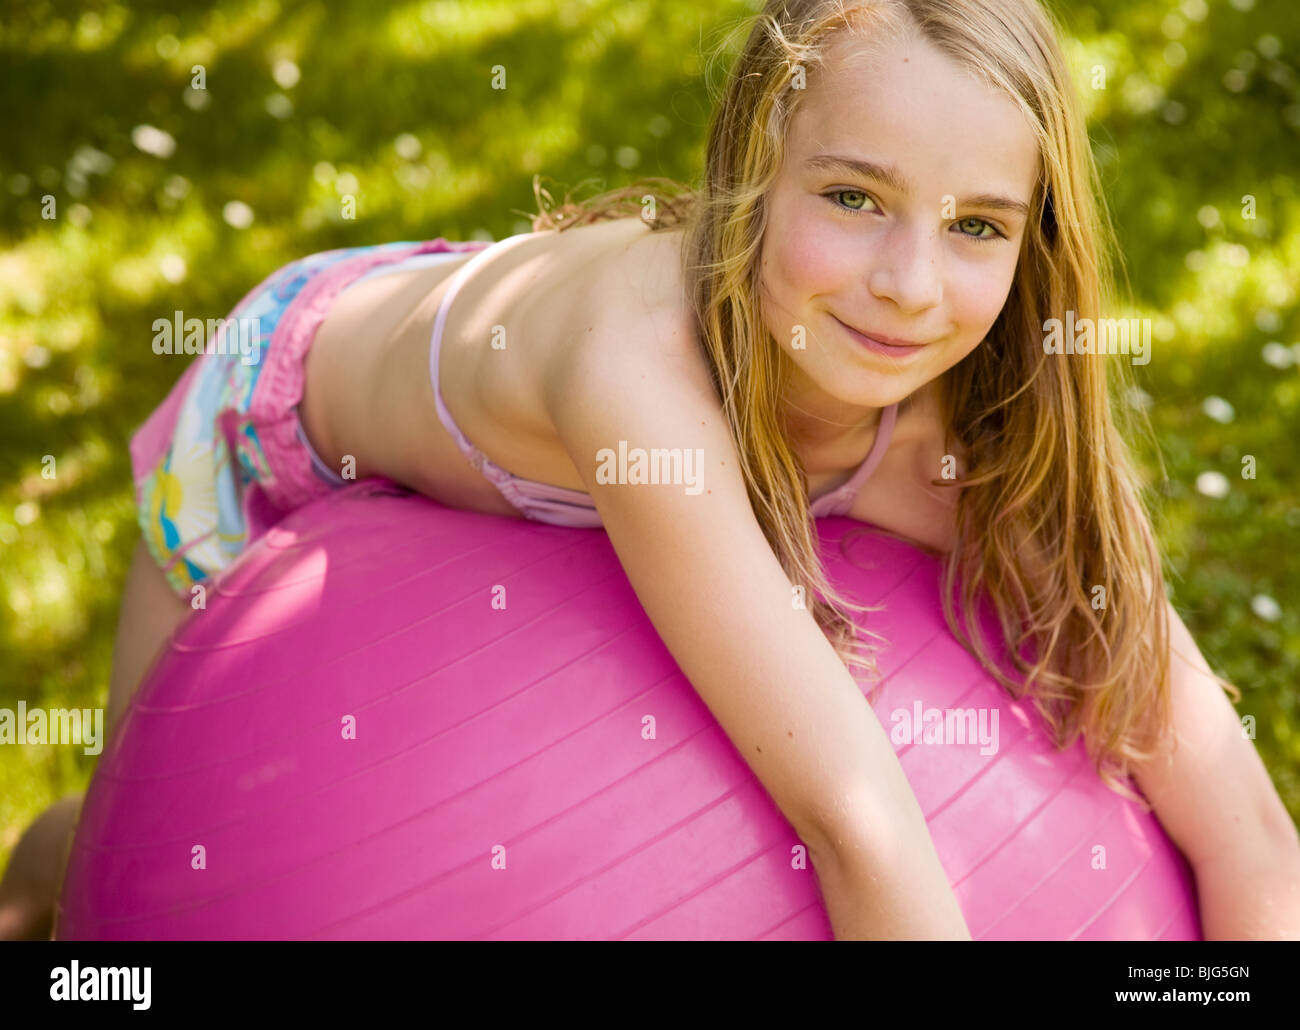 Portrait of young blonde girl lying on pink ball smiling ...